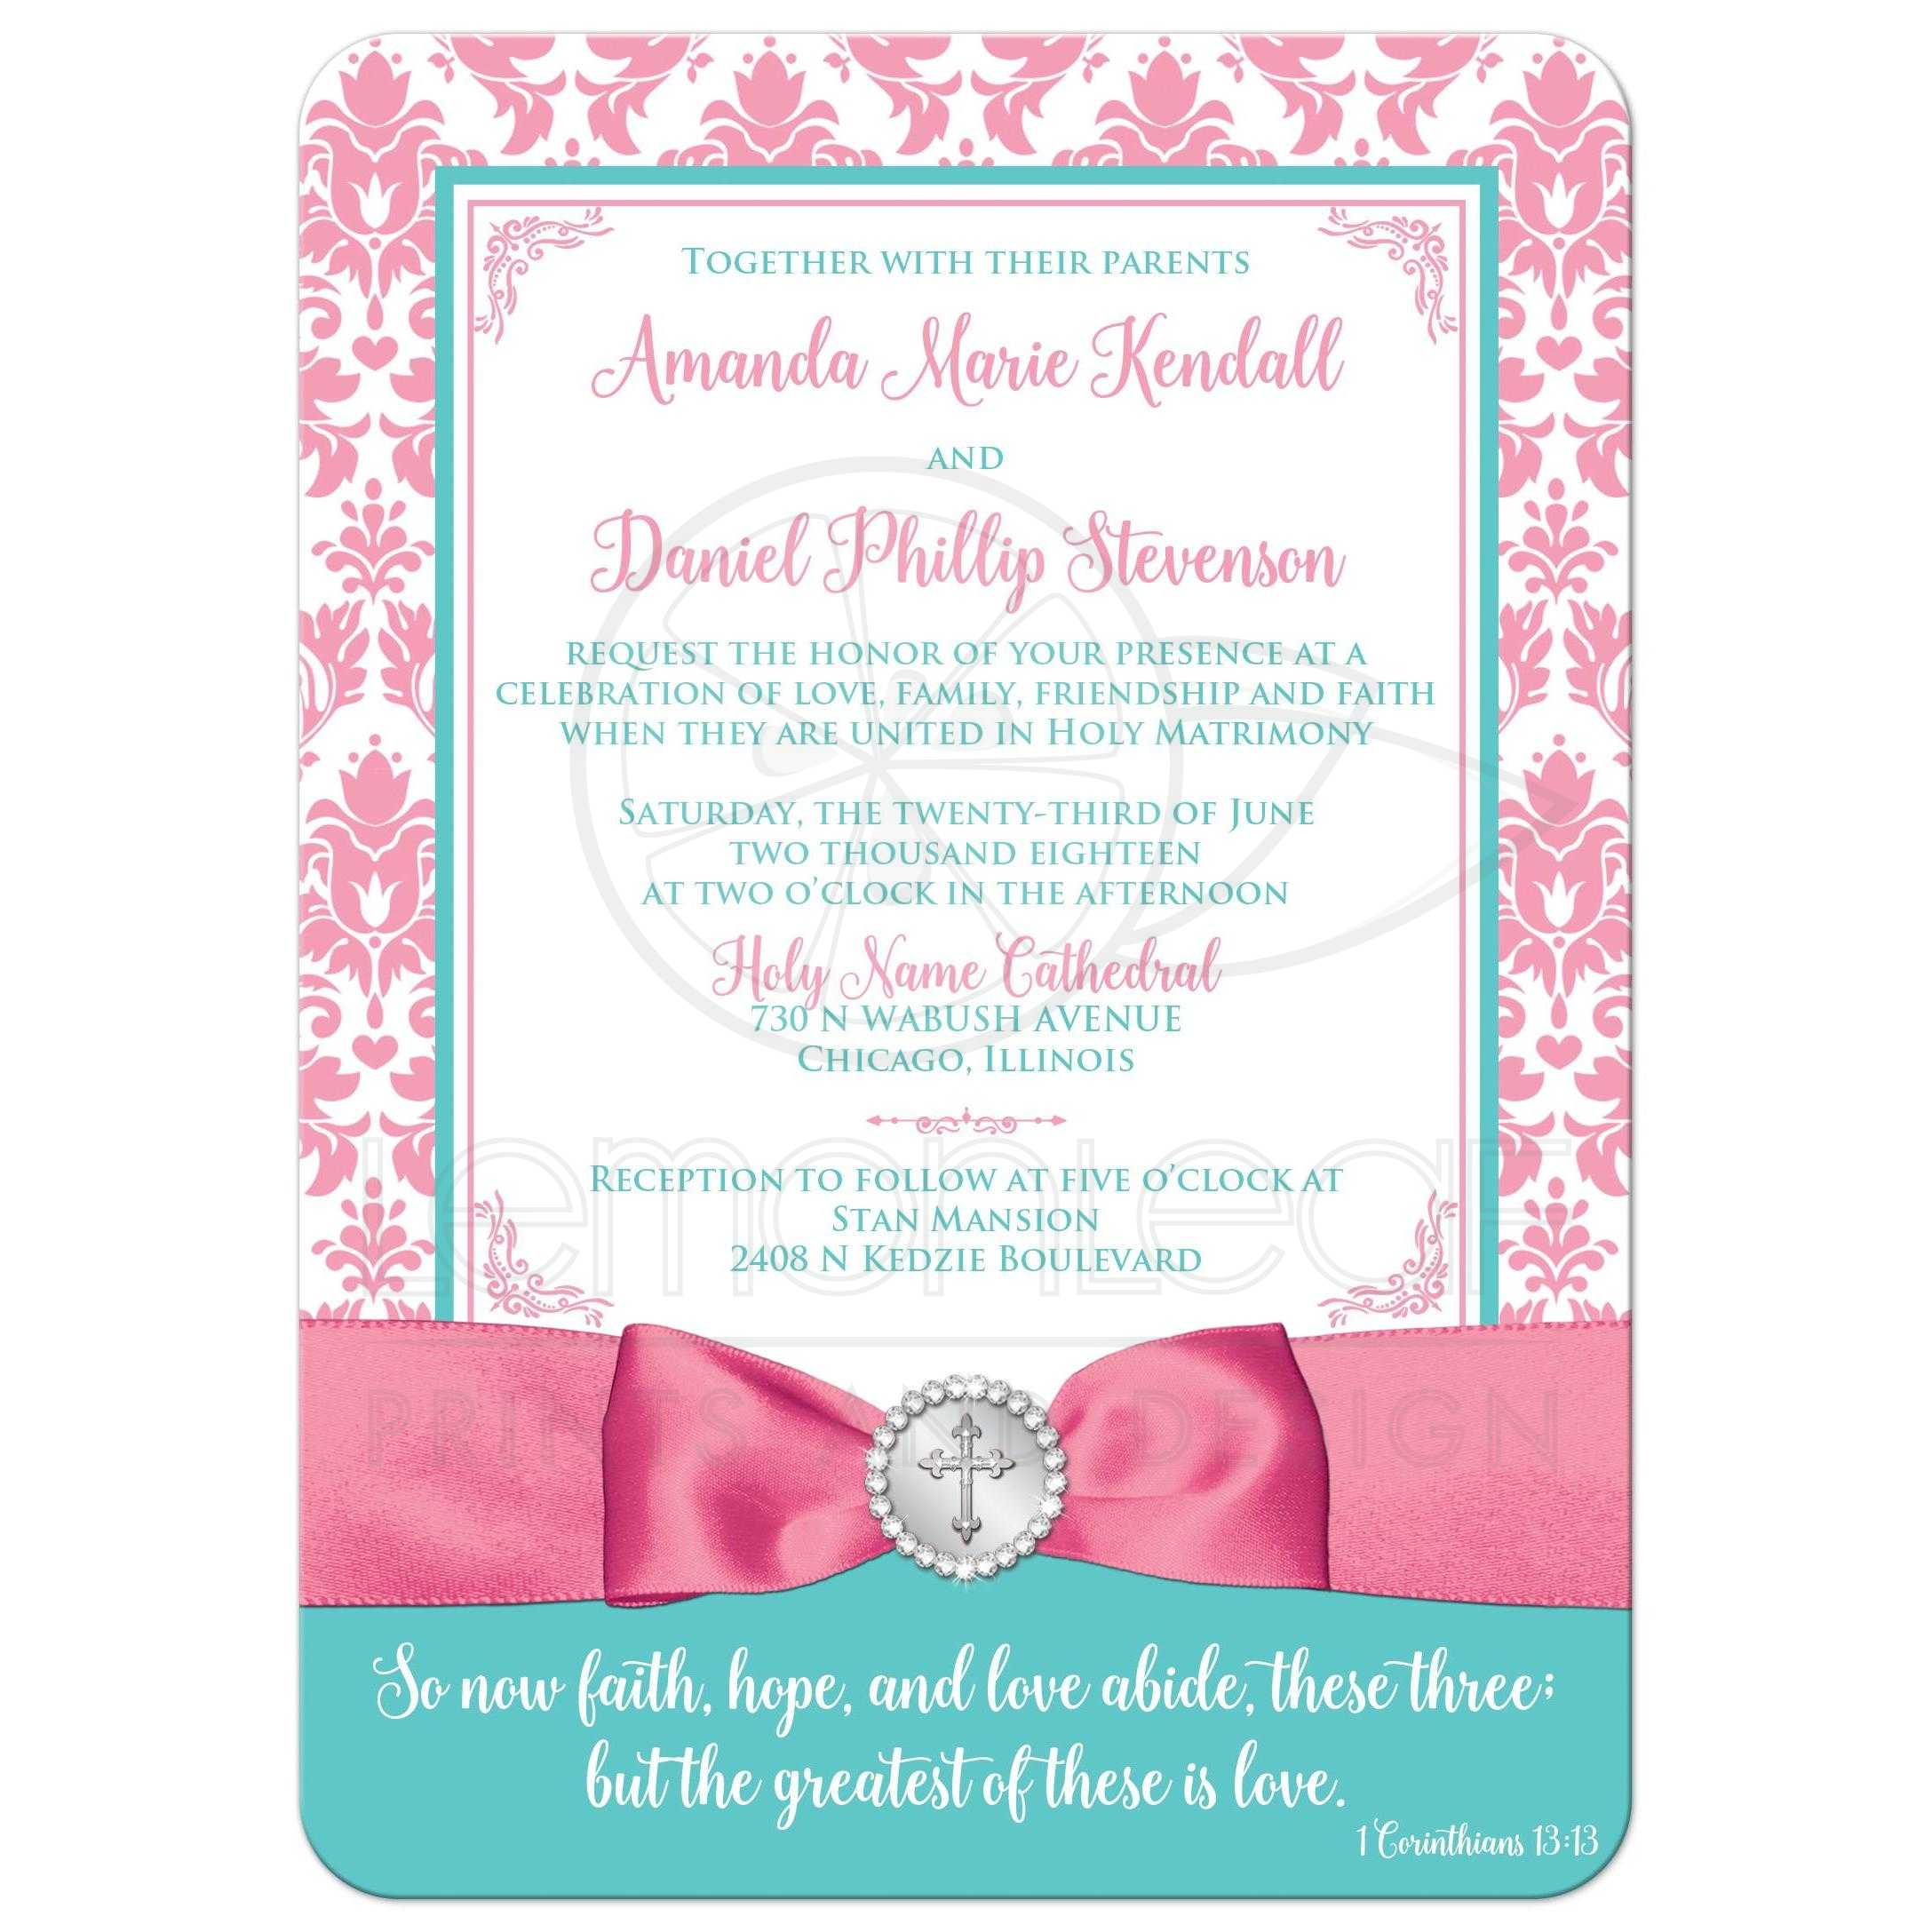 ... Christian wedding invitation in pink, aqua blue, white damask with ribbon, bow, ...